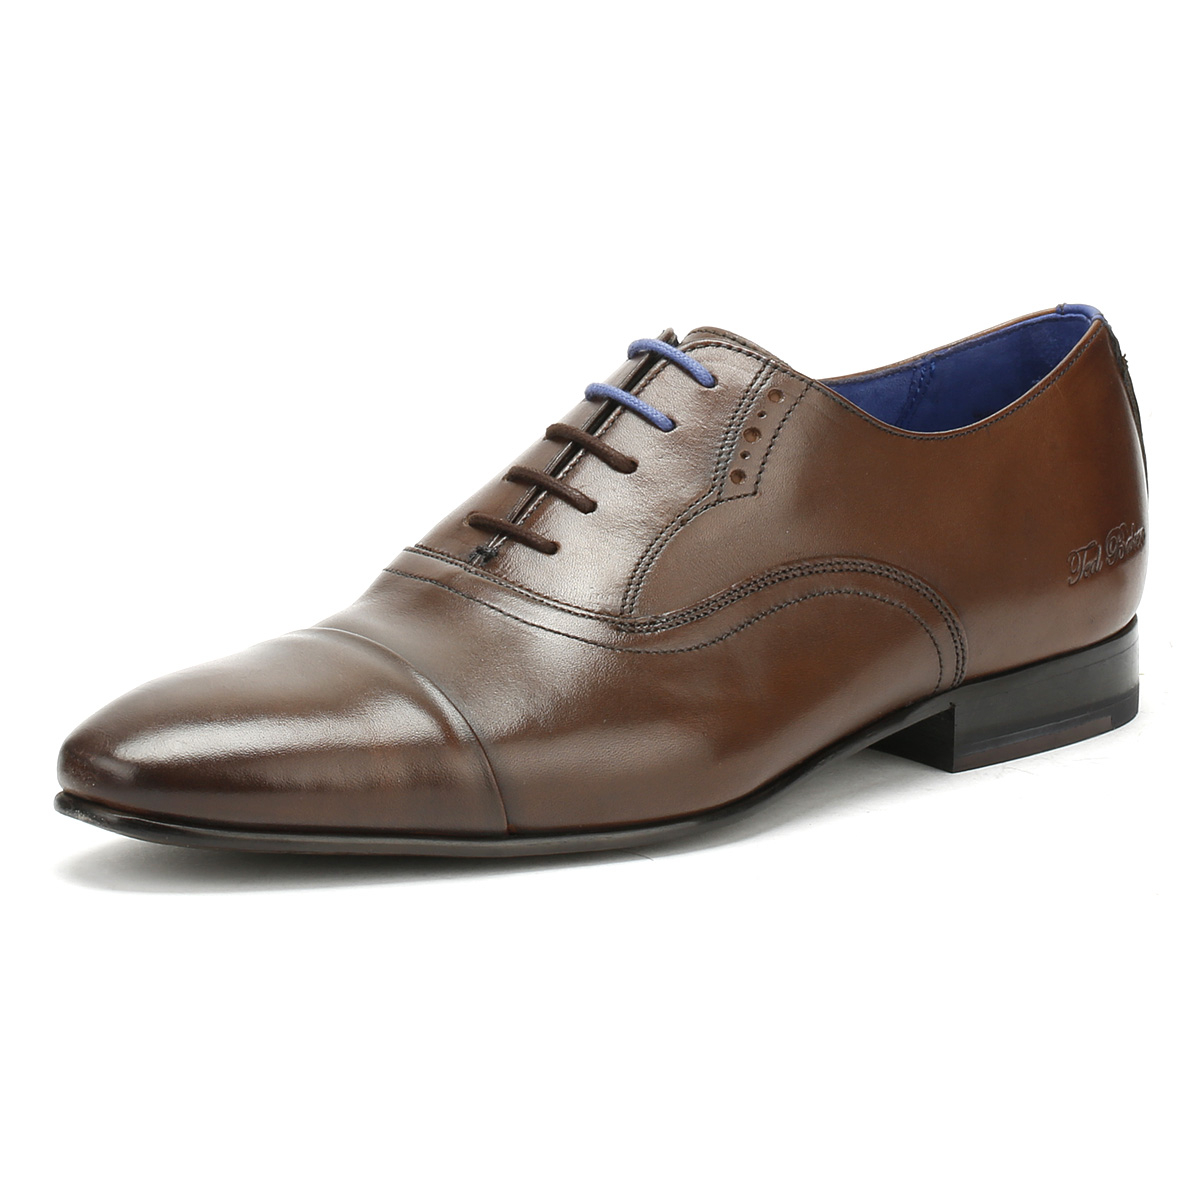 14f0722b6b97c4 Details about Ted Baker Mens Formal Shoes Brown Leather Murain Lace Up  Smarts